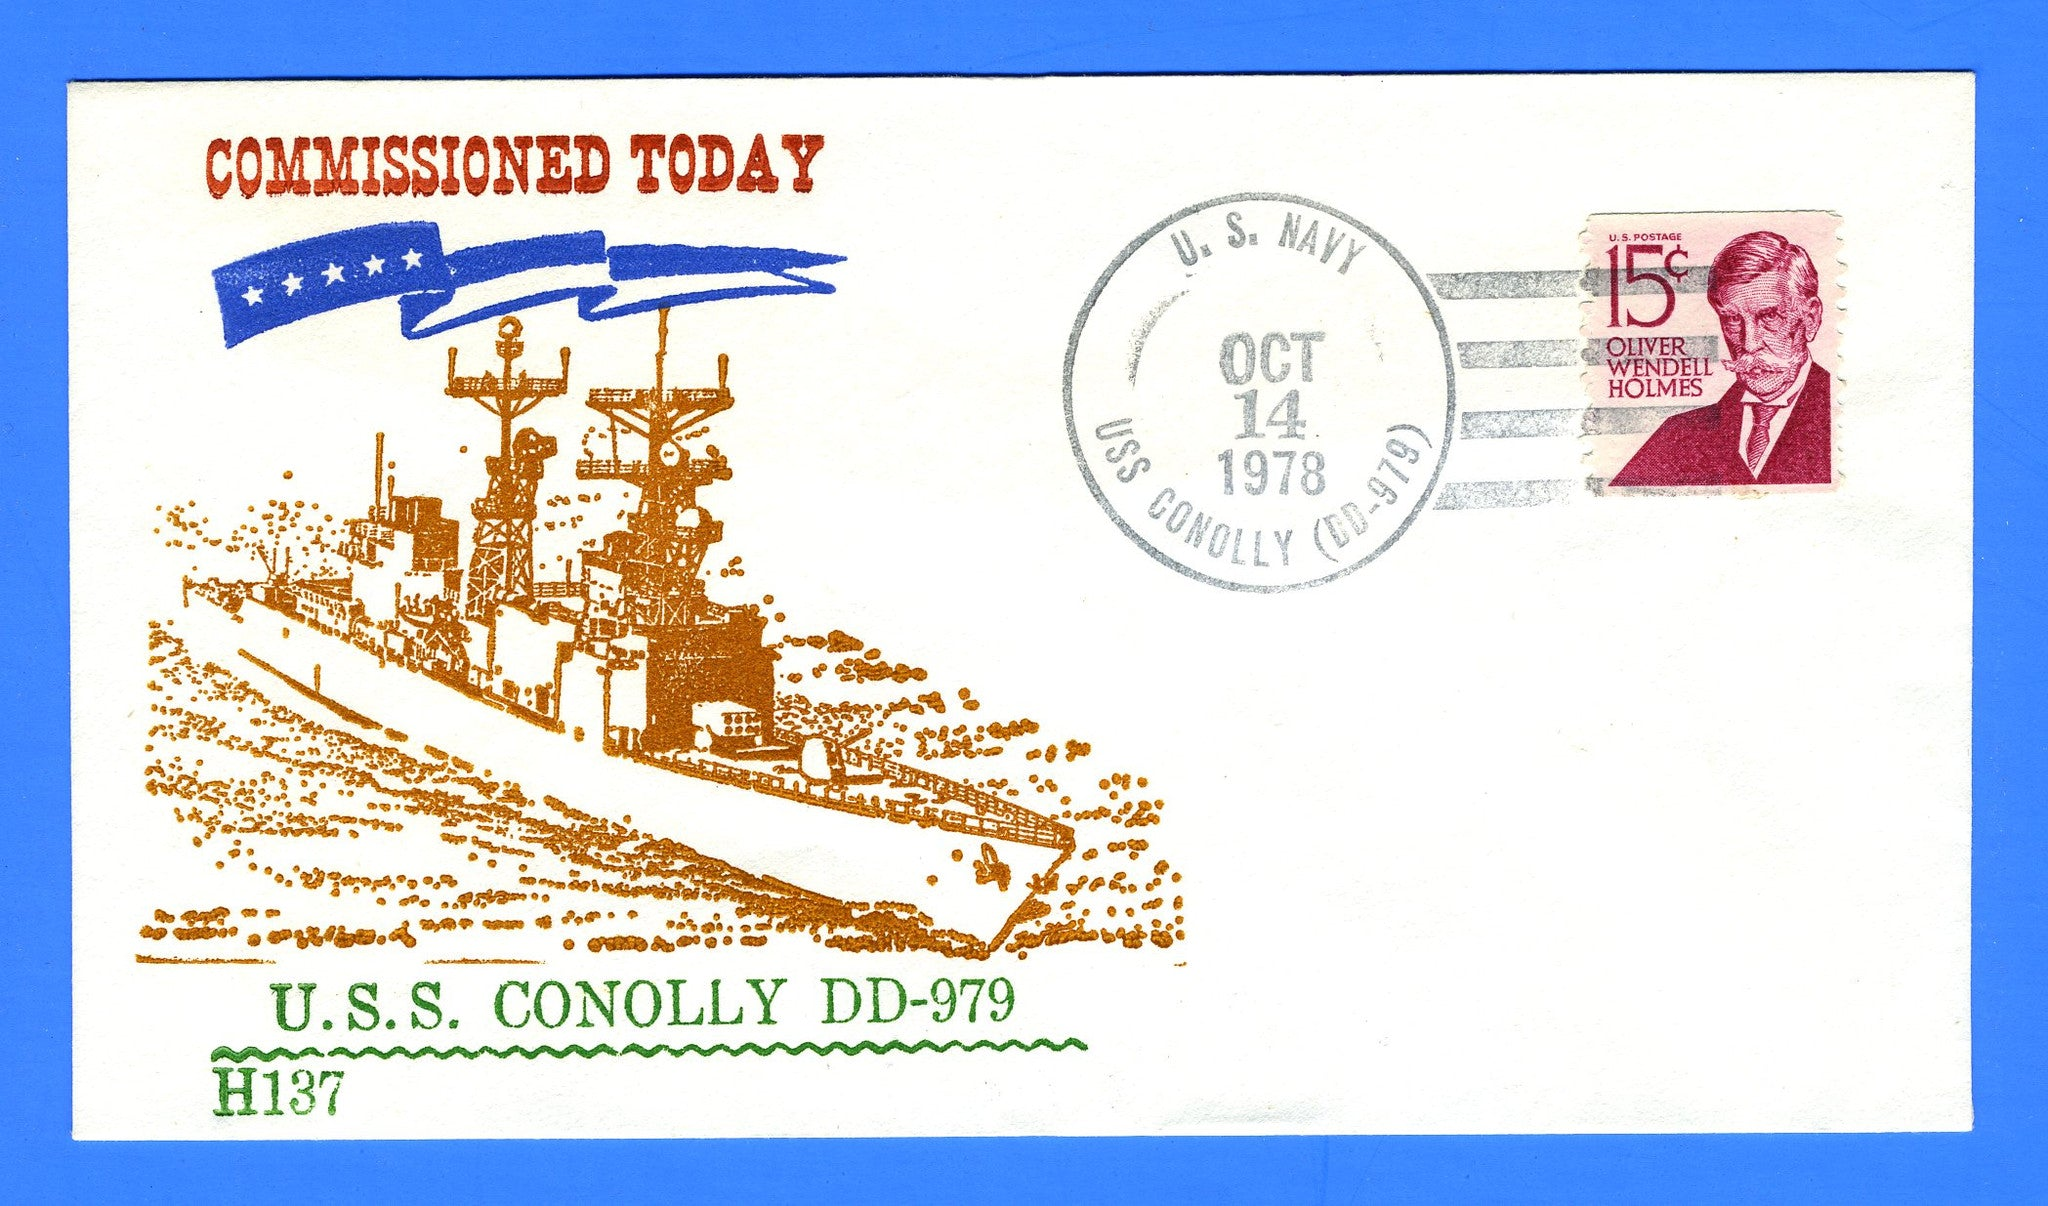 USS Conolly DD-979 Commissioned October 14, 1978 - Sponsored by Stephen Decatur Chapter No. 4 USCS, Cachet by Hoffner Cachets